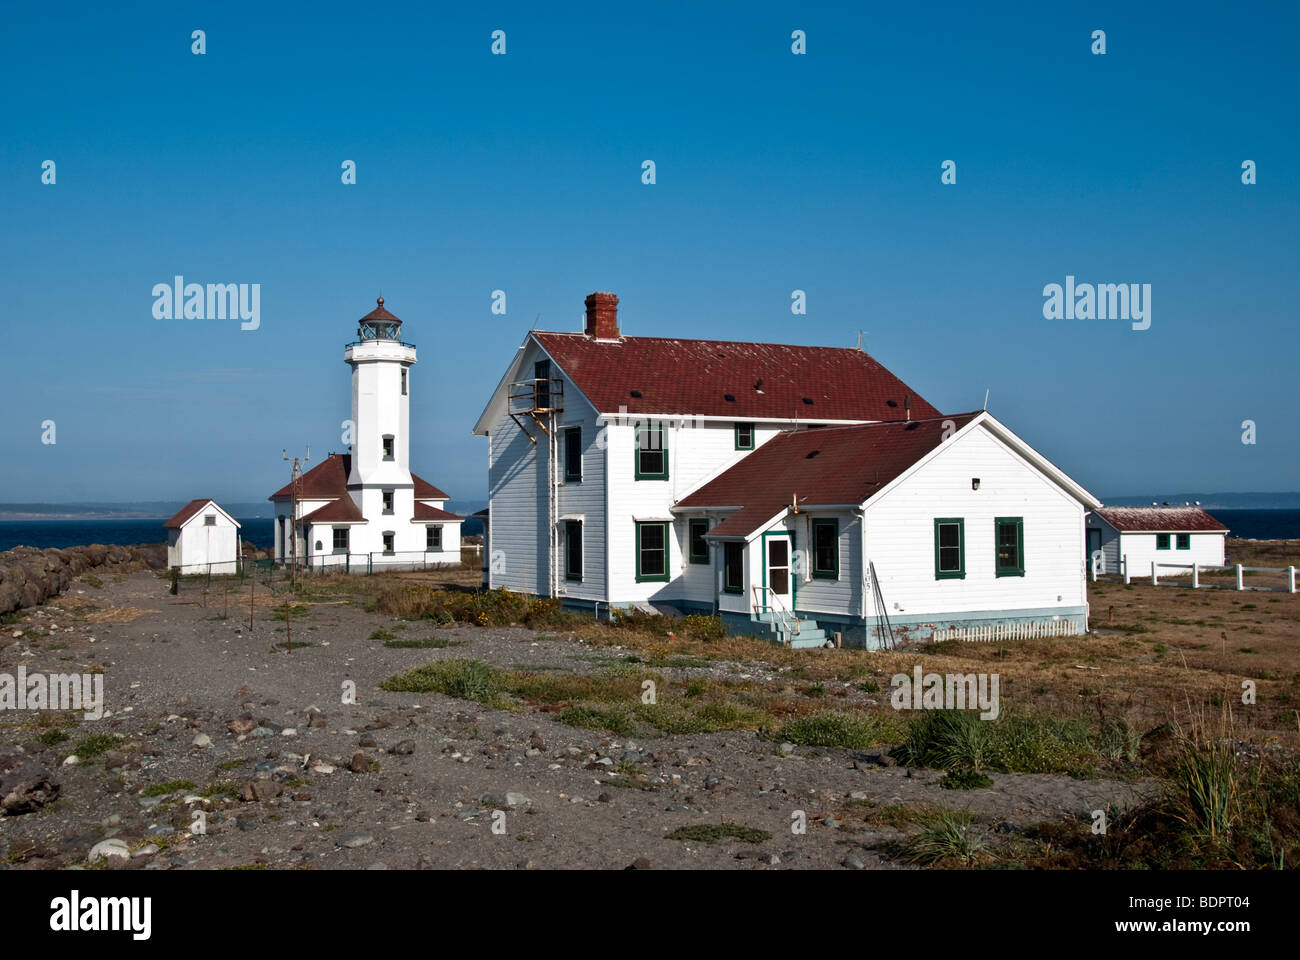 automated unoccupied Point Wilson Lighthouse & keepers dwelling guarding the entrance to Puget Sound Port Townsend - Stock Image